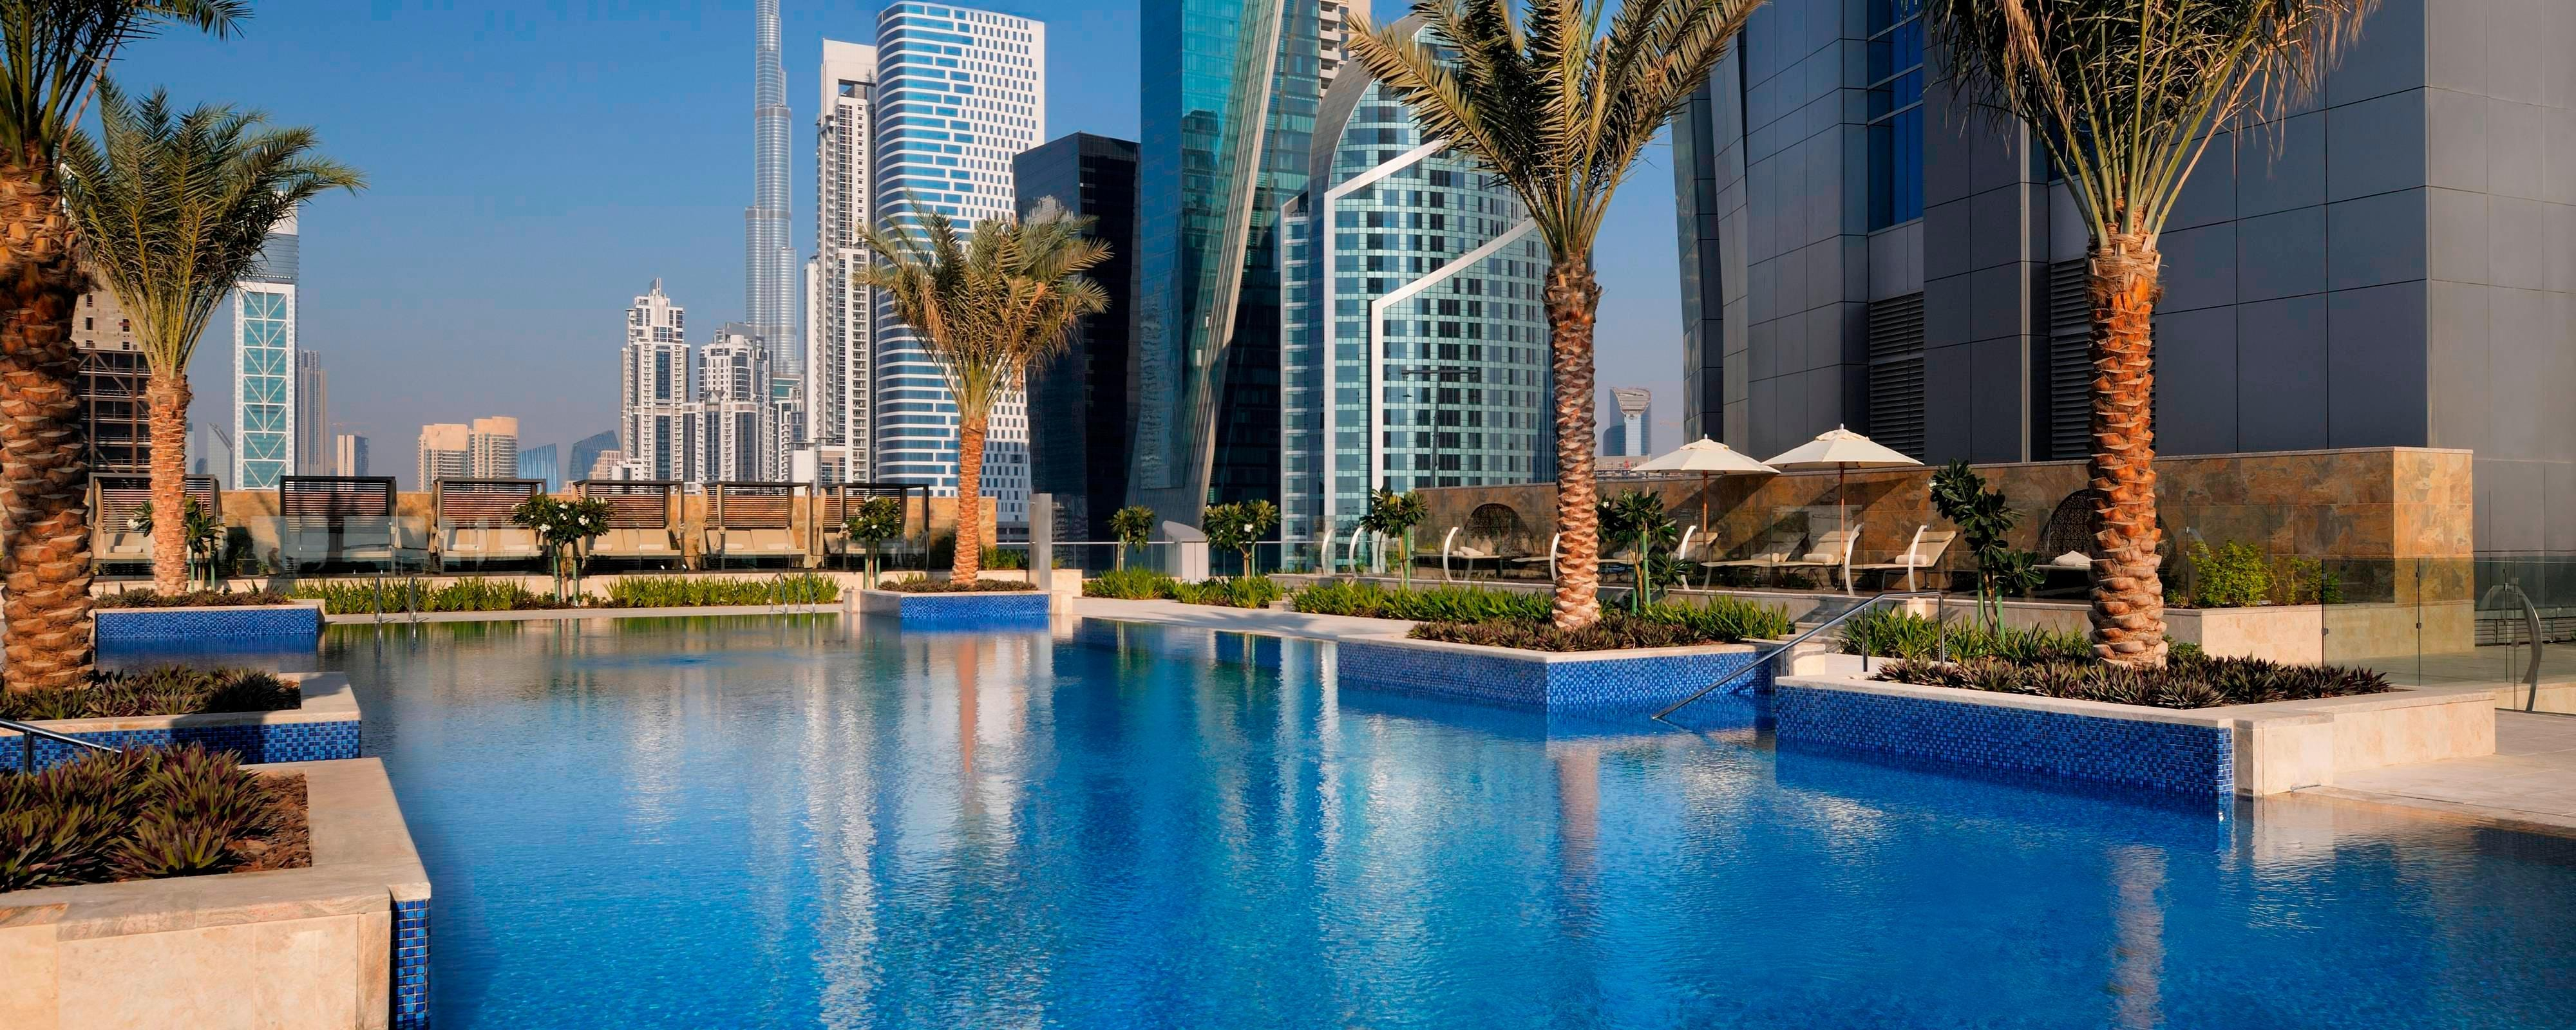 Piscina do hotel em Dubai com vista